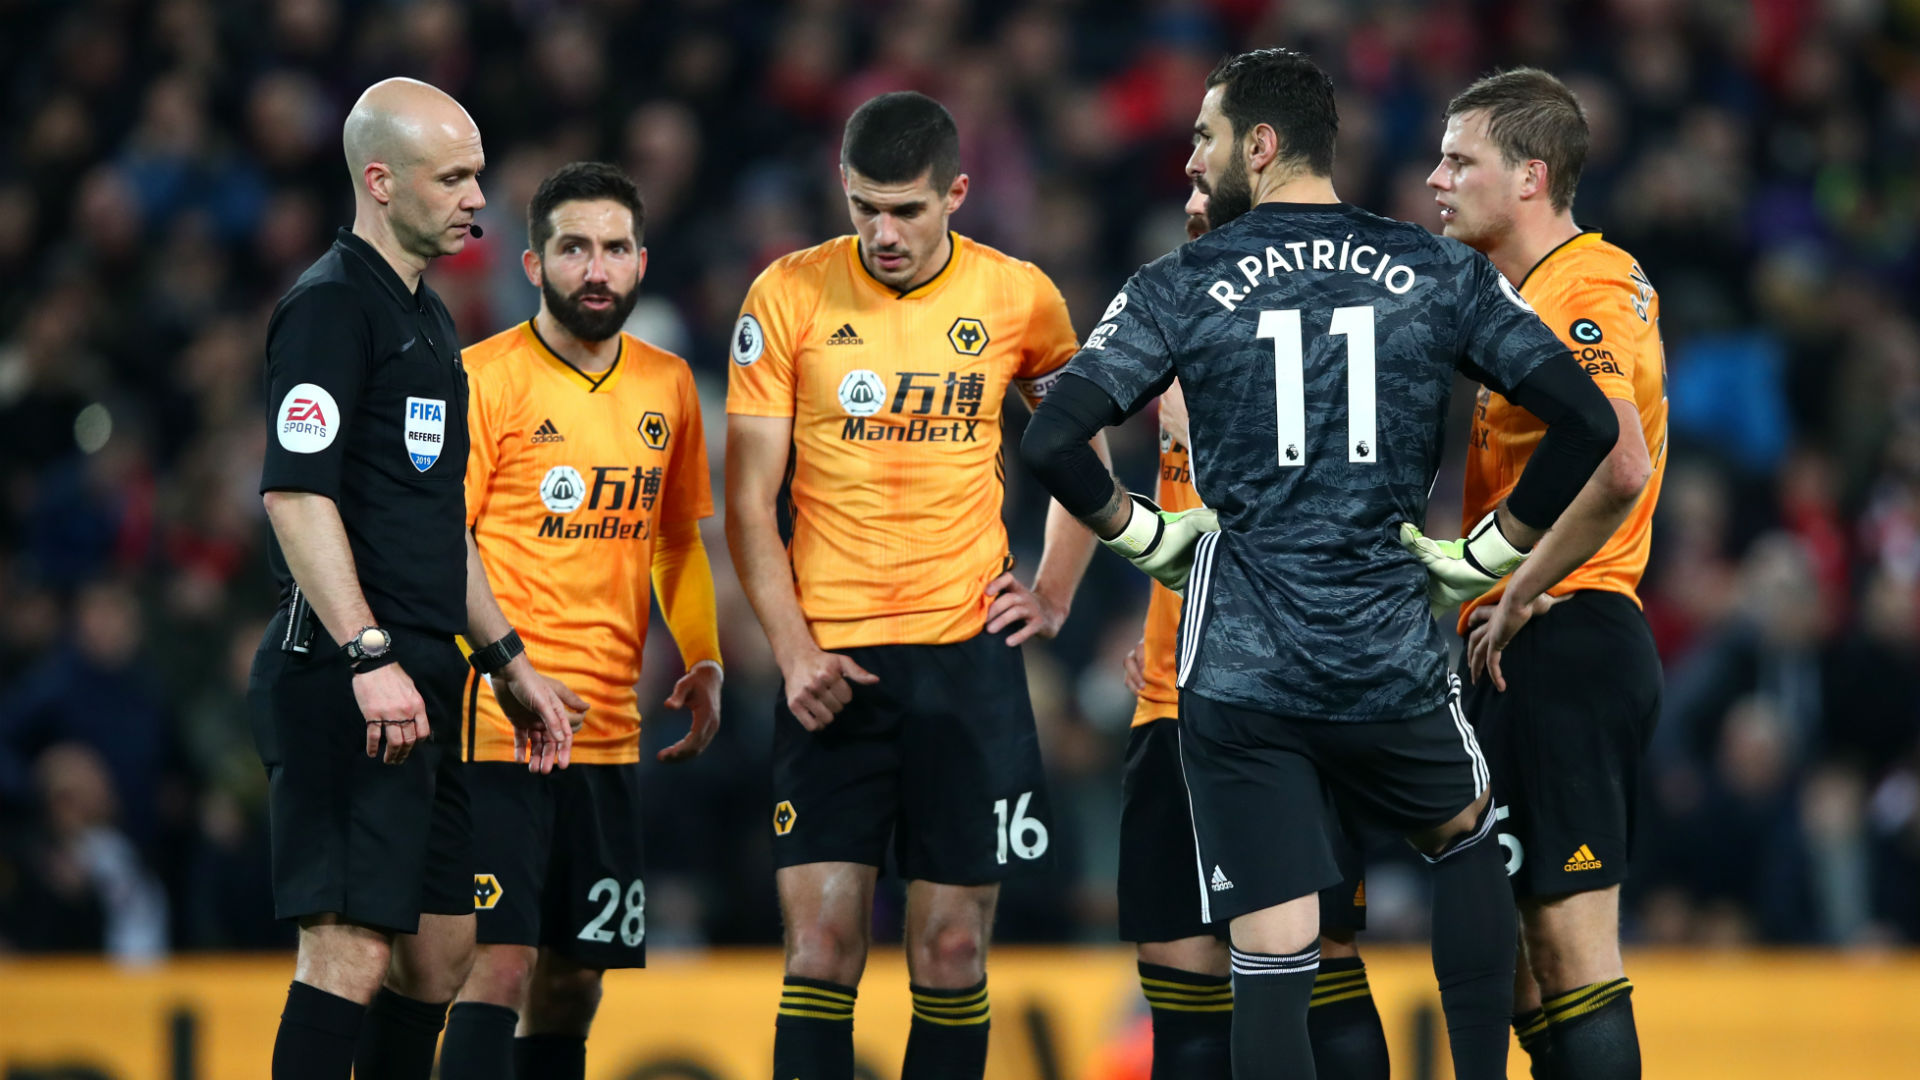 VAR is not working - Coady says decisions are 'killing' Wolves after Anfield controversy